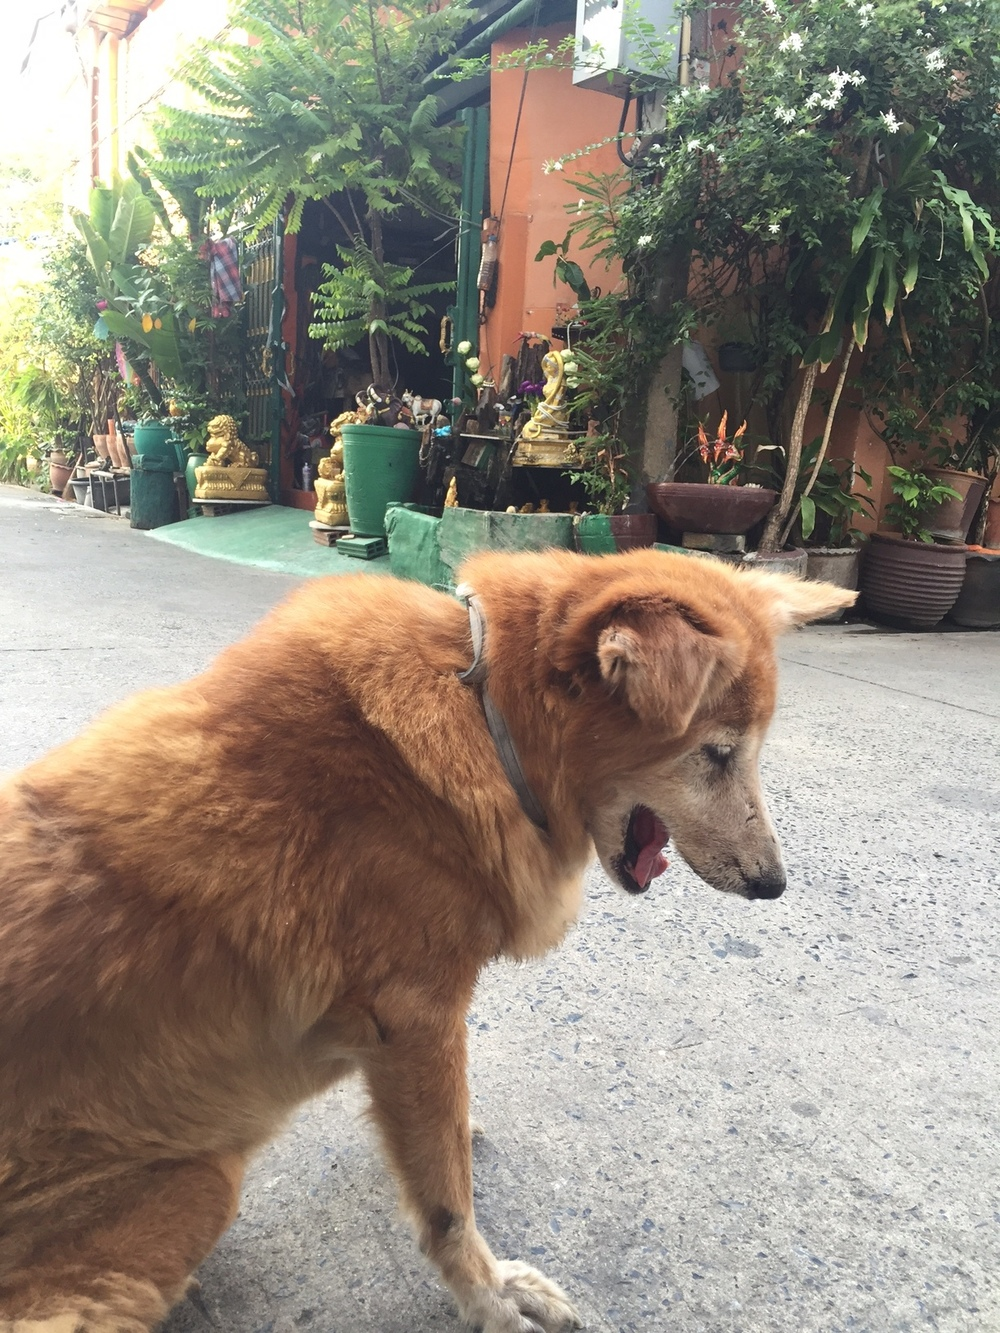 Sway (Beautiful in Thai): Sway was accidentally hit by the owner of the hostel but cared for, loved, and mended back to health. She's now the house dog.Nobody knows how old she is.